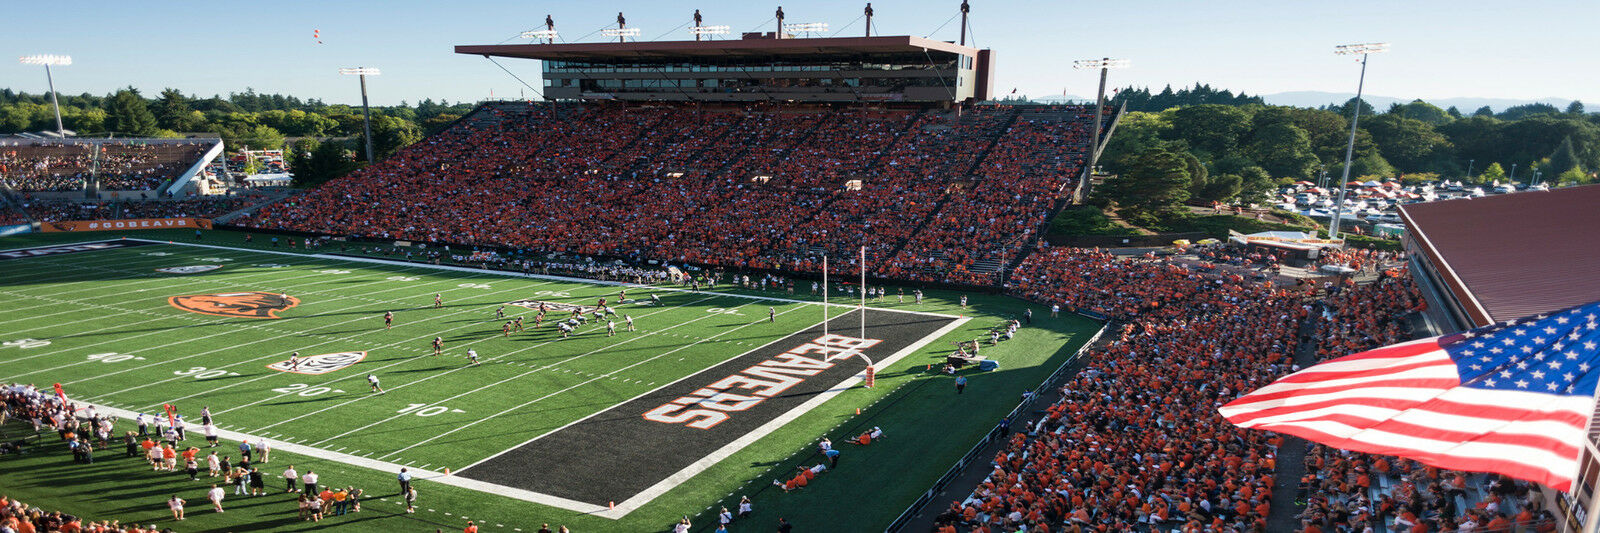 Stanford Cardinals at Oregon State Beavers Football